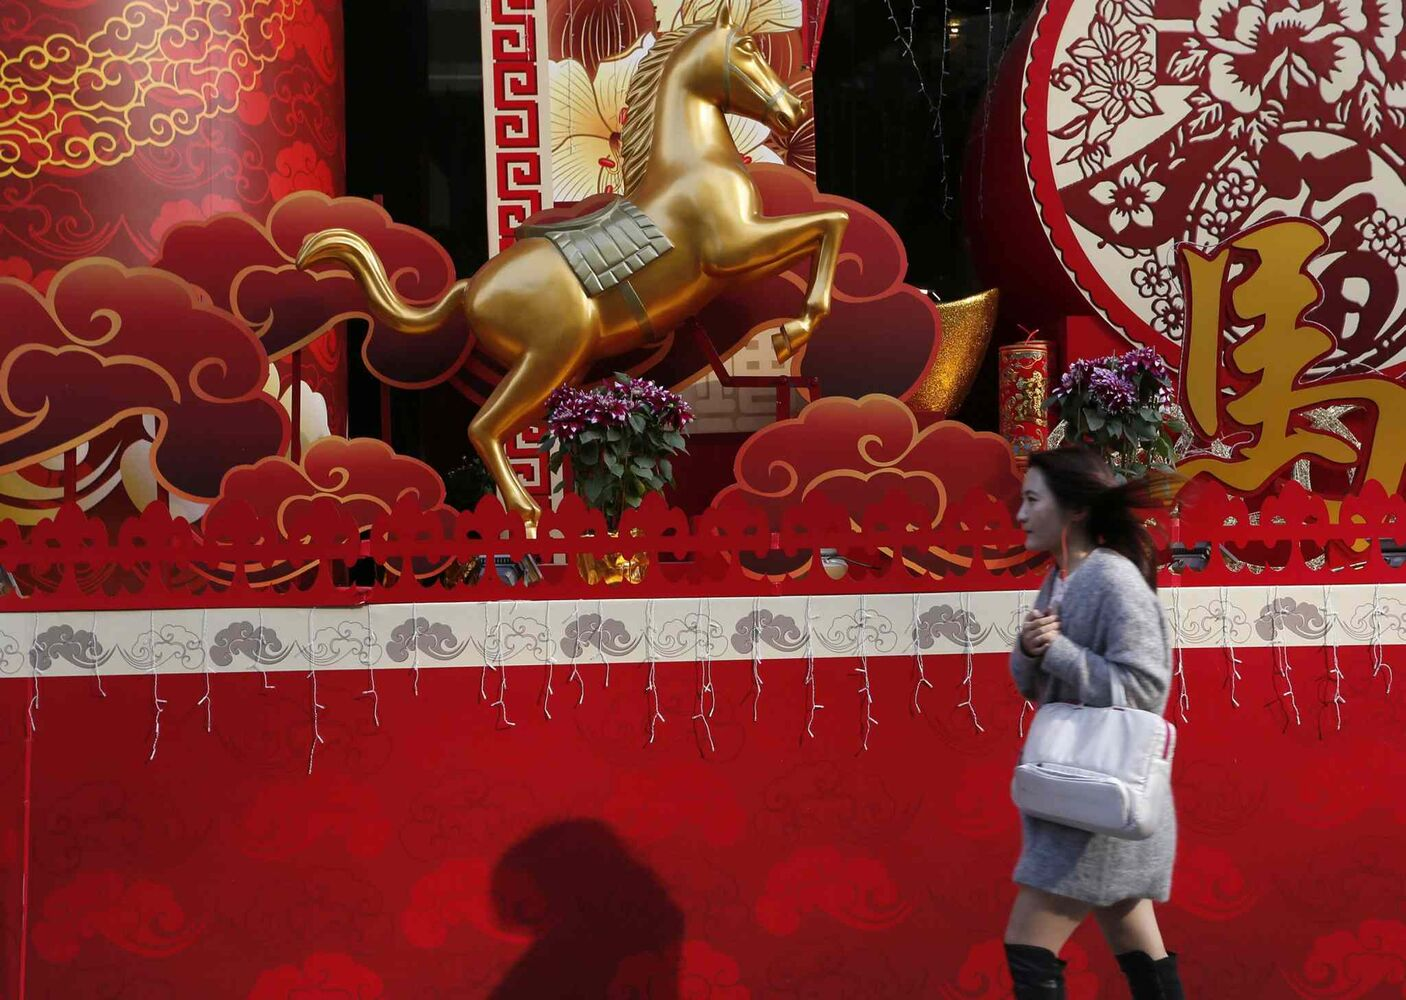 In this Monday, Jan. 27, 2014 photo, Chinese New Year decorations with a golden horse are displayed outside a building in Hong Kong. Hong Kong expected 7.93 million visitors for New Year celebrations, more than territory's permanent population of 7.1 million.  (Vincent Yu / The Associated Press)